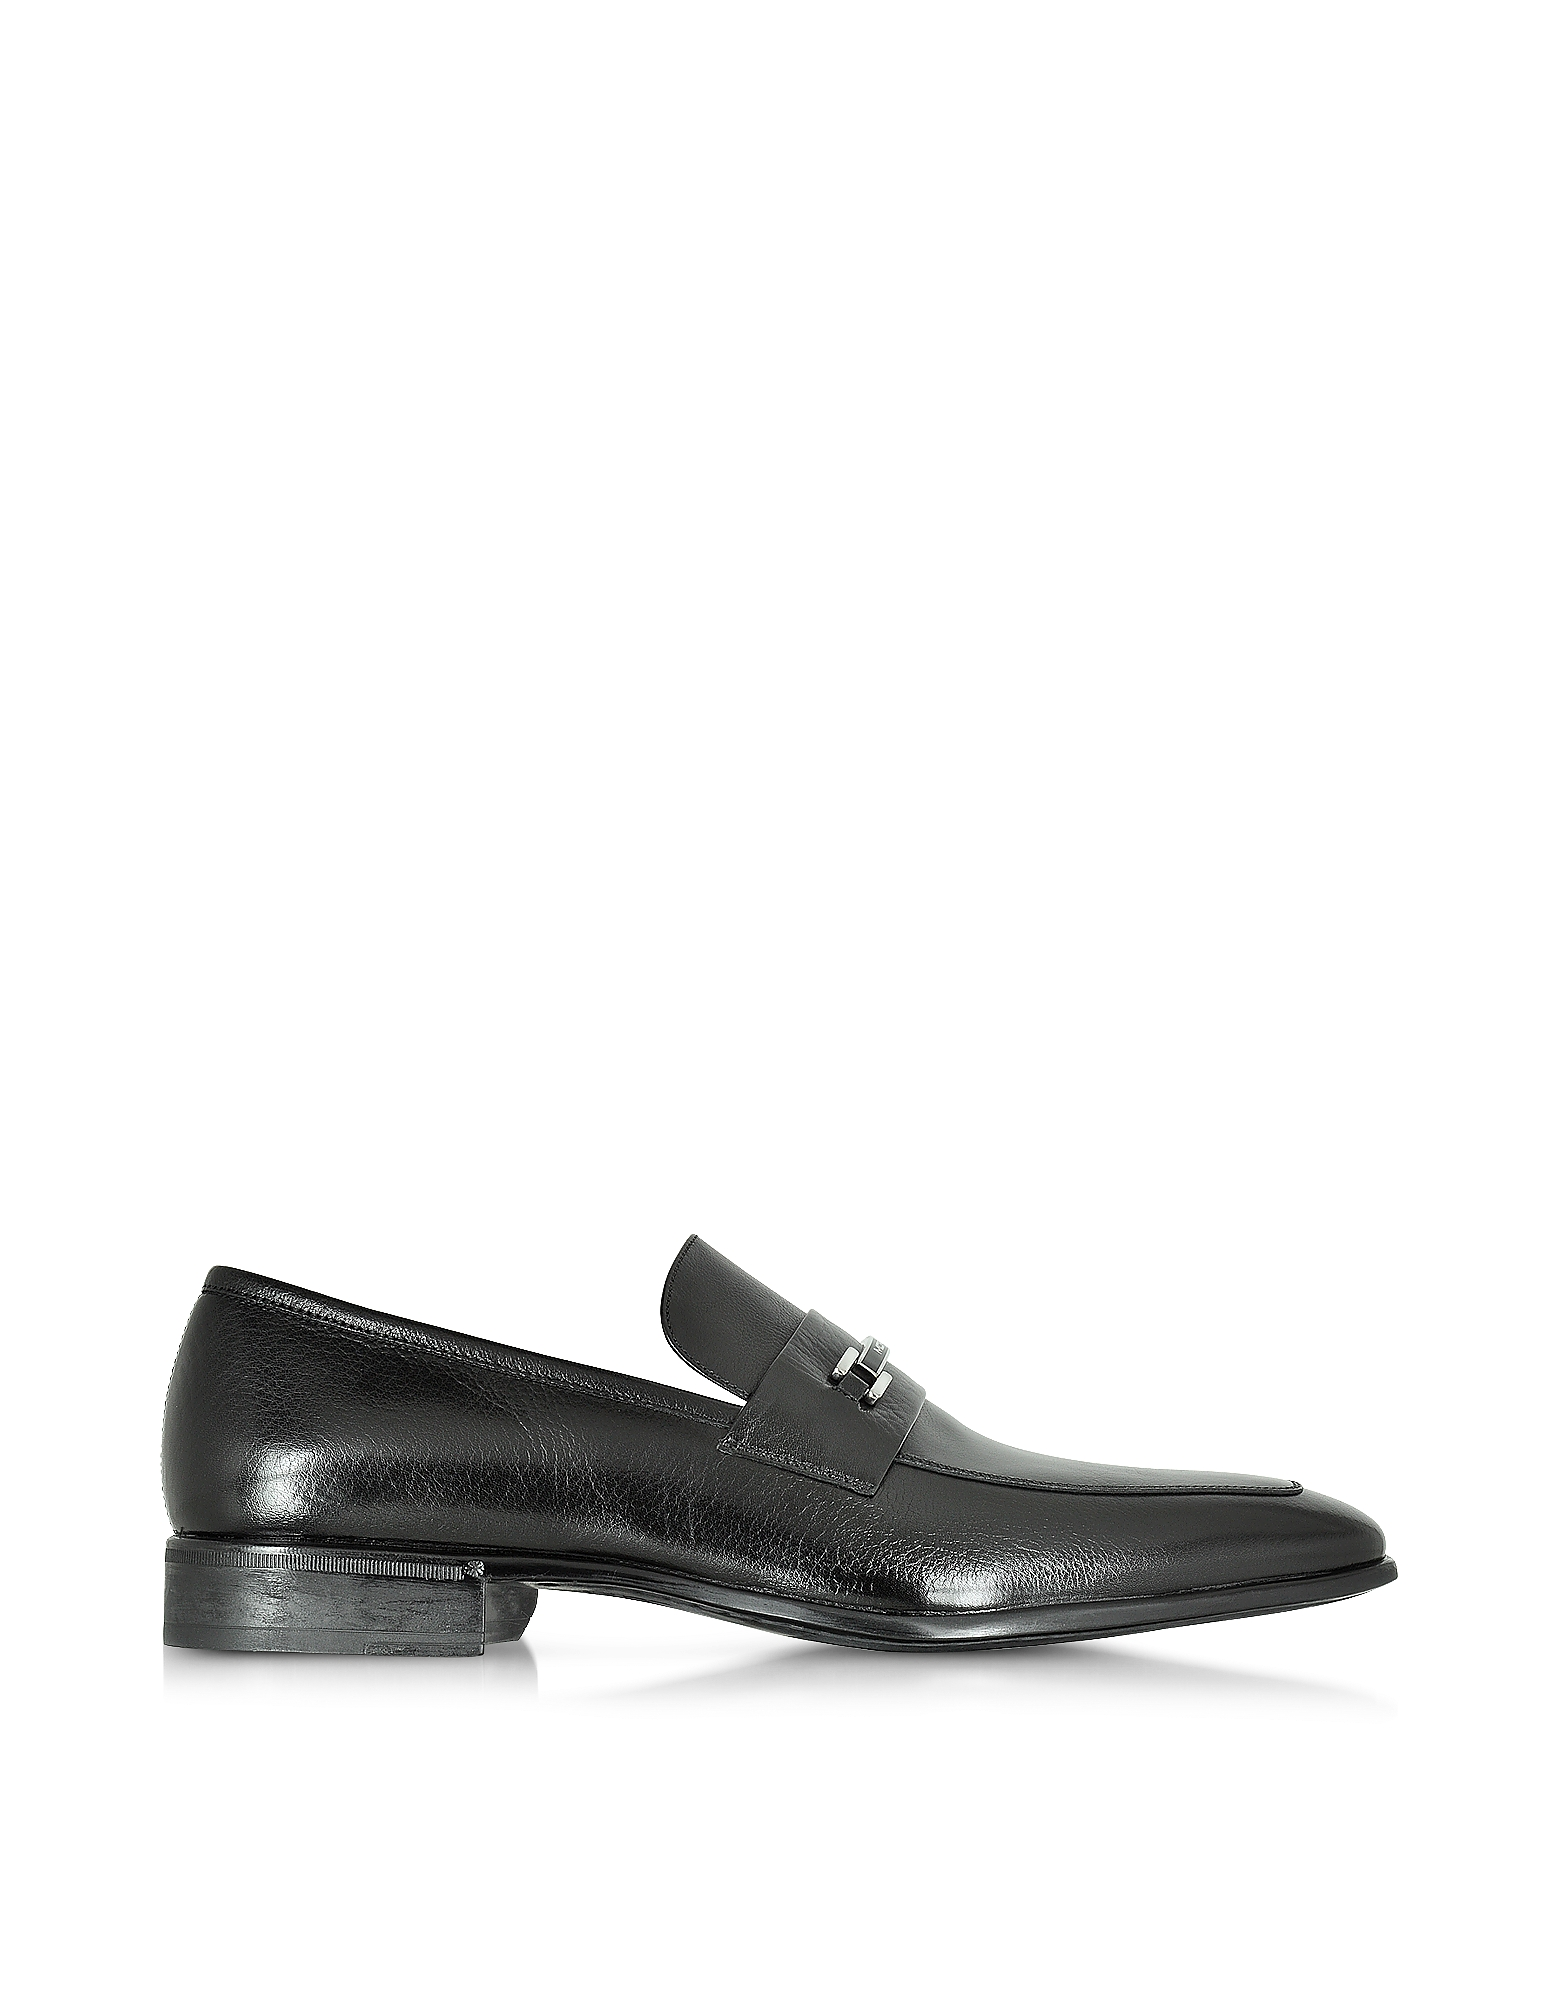 Moreschi Shoes, Santiago Black Signature Buffalo Leather Loafer Shoe w/Rubber Sole